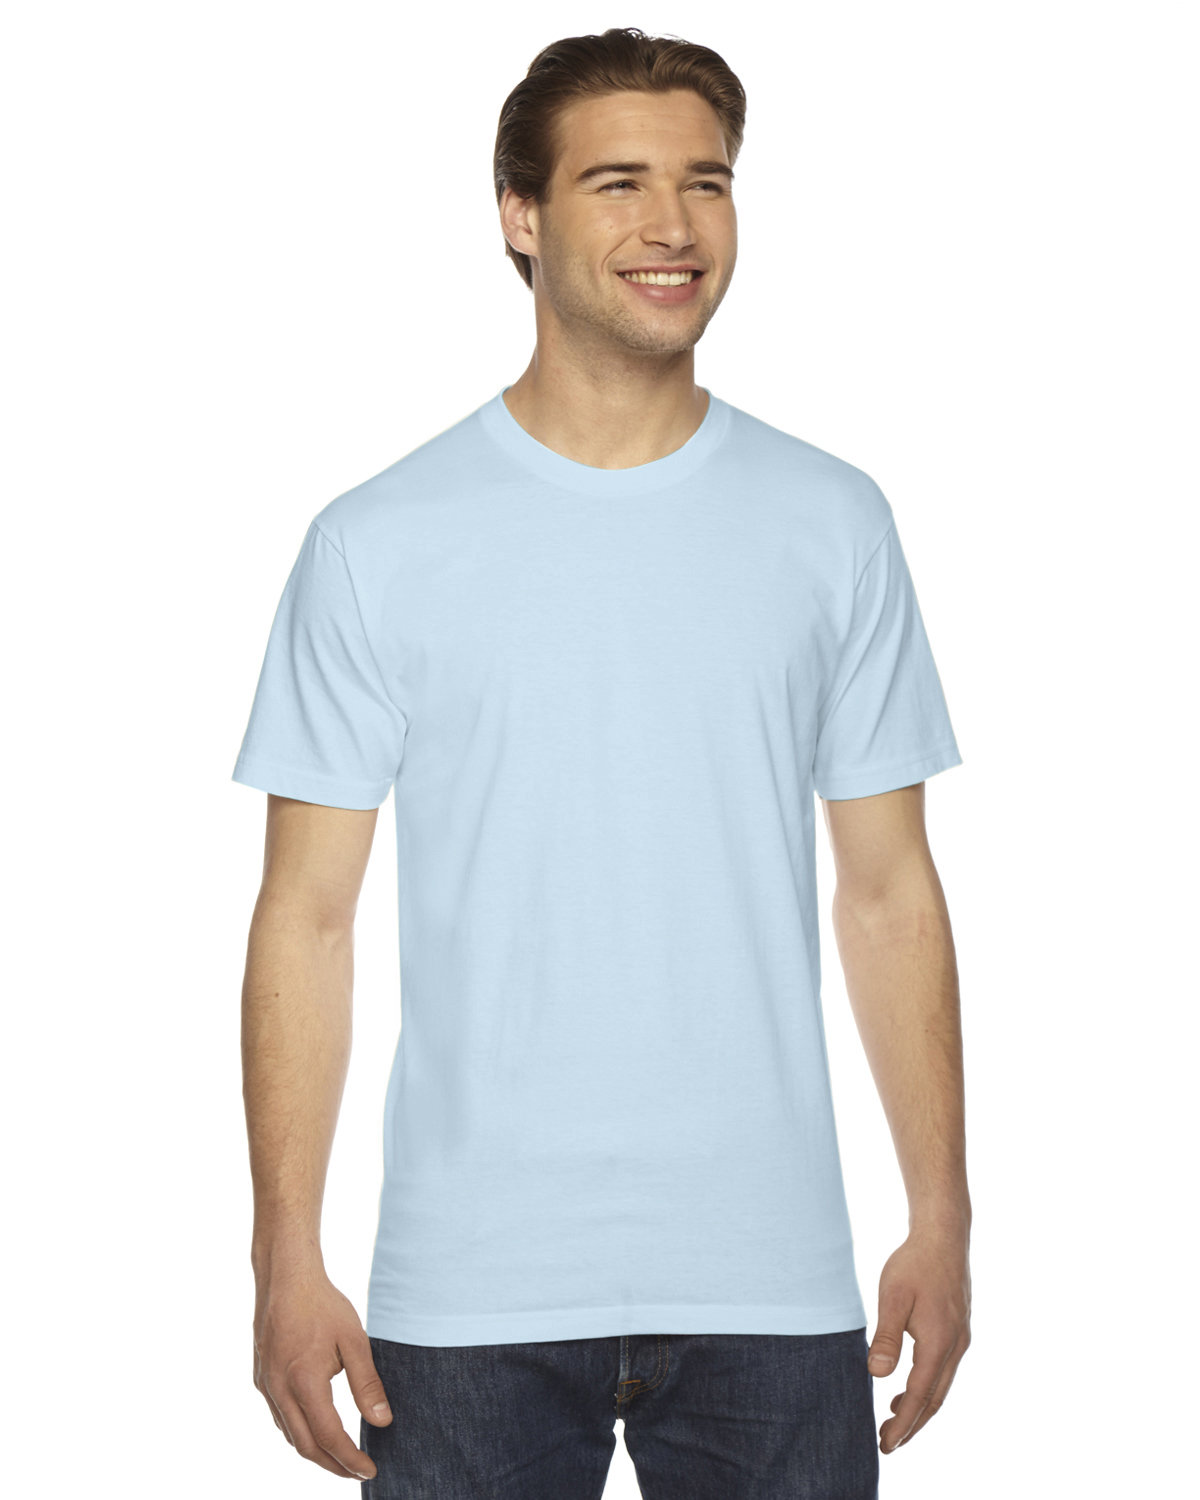 American Apparel Unisex Fine Jersey USA Made T-Shirt LIGHT BLUE